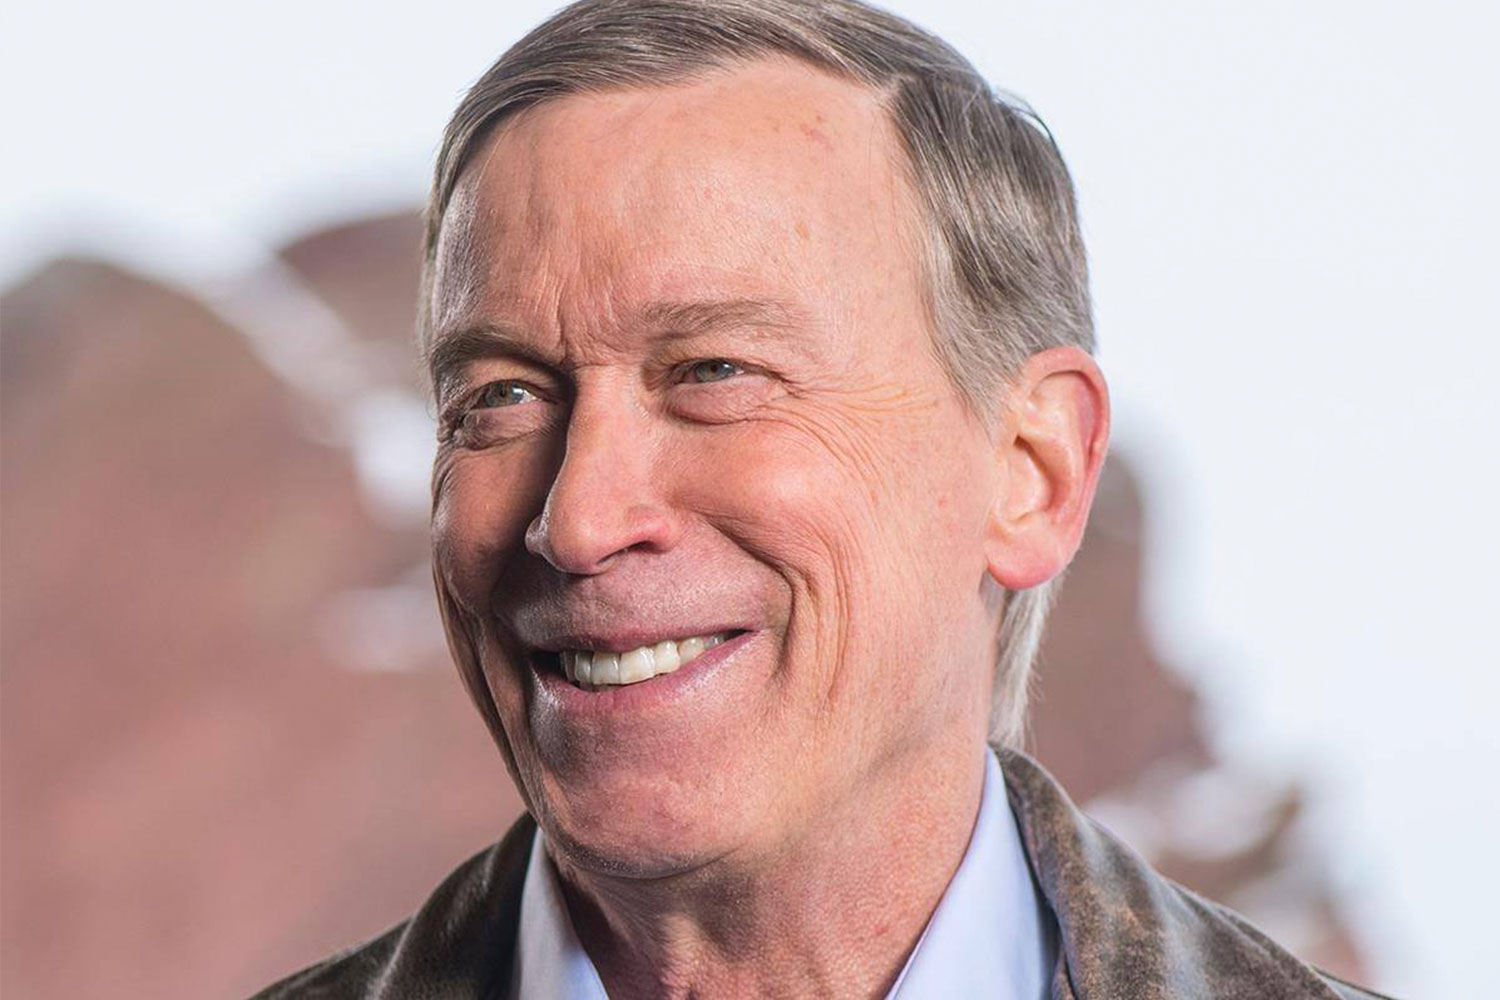 John Hickenlooper, Ex-Governor and Craft Brewer, Is Running for President